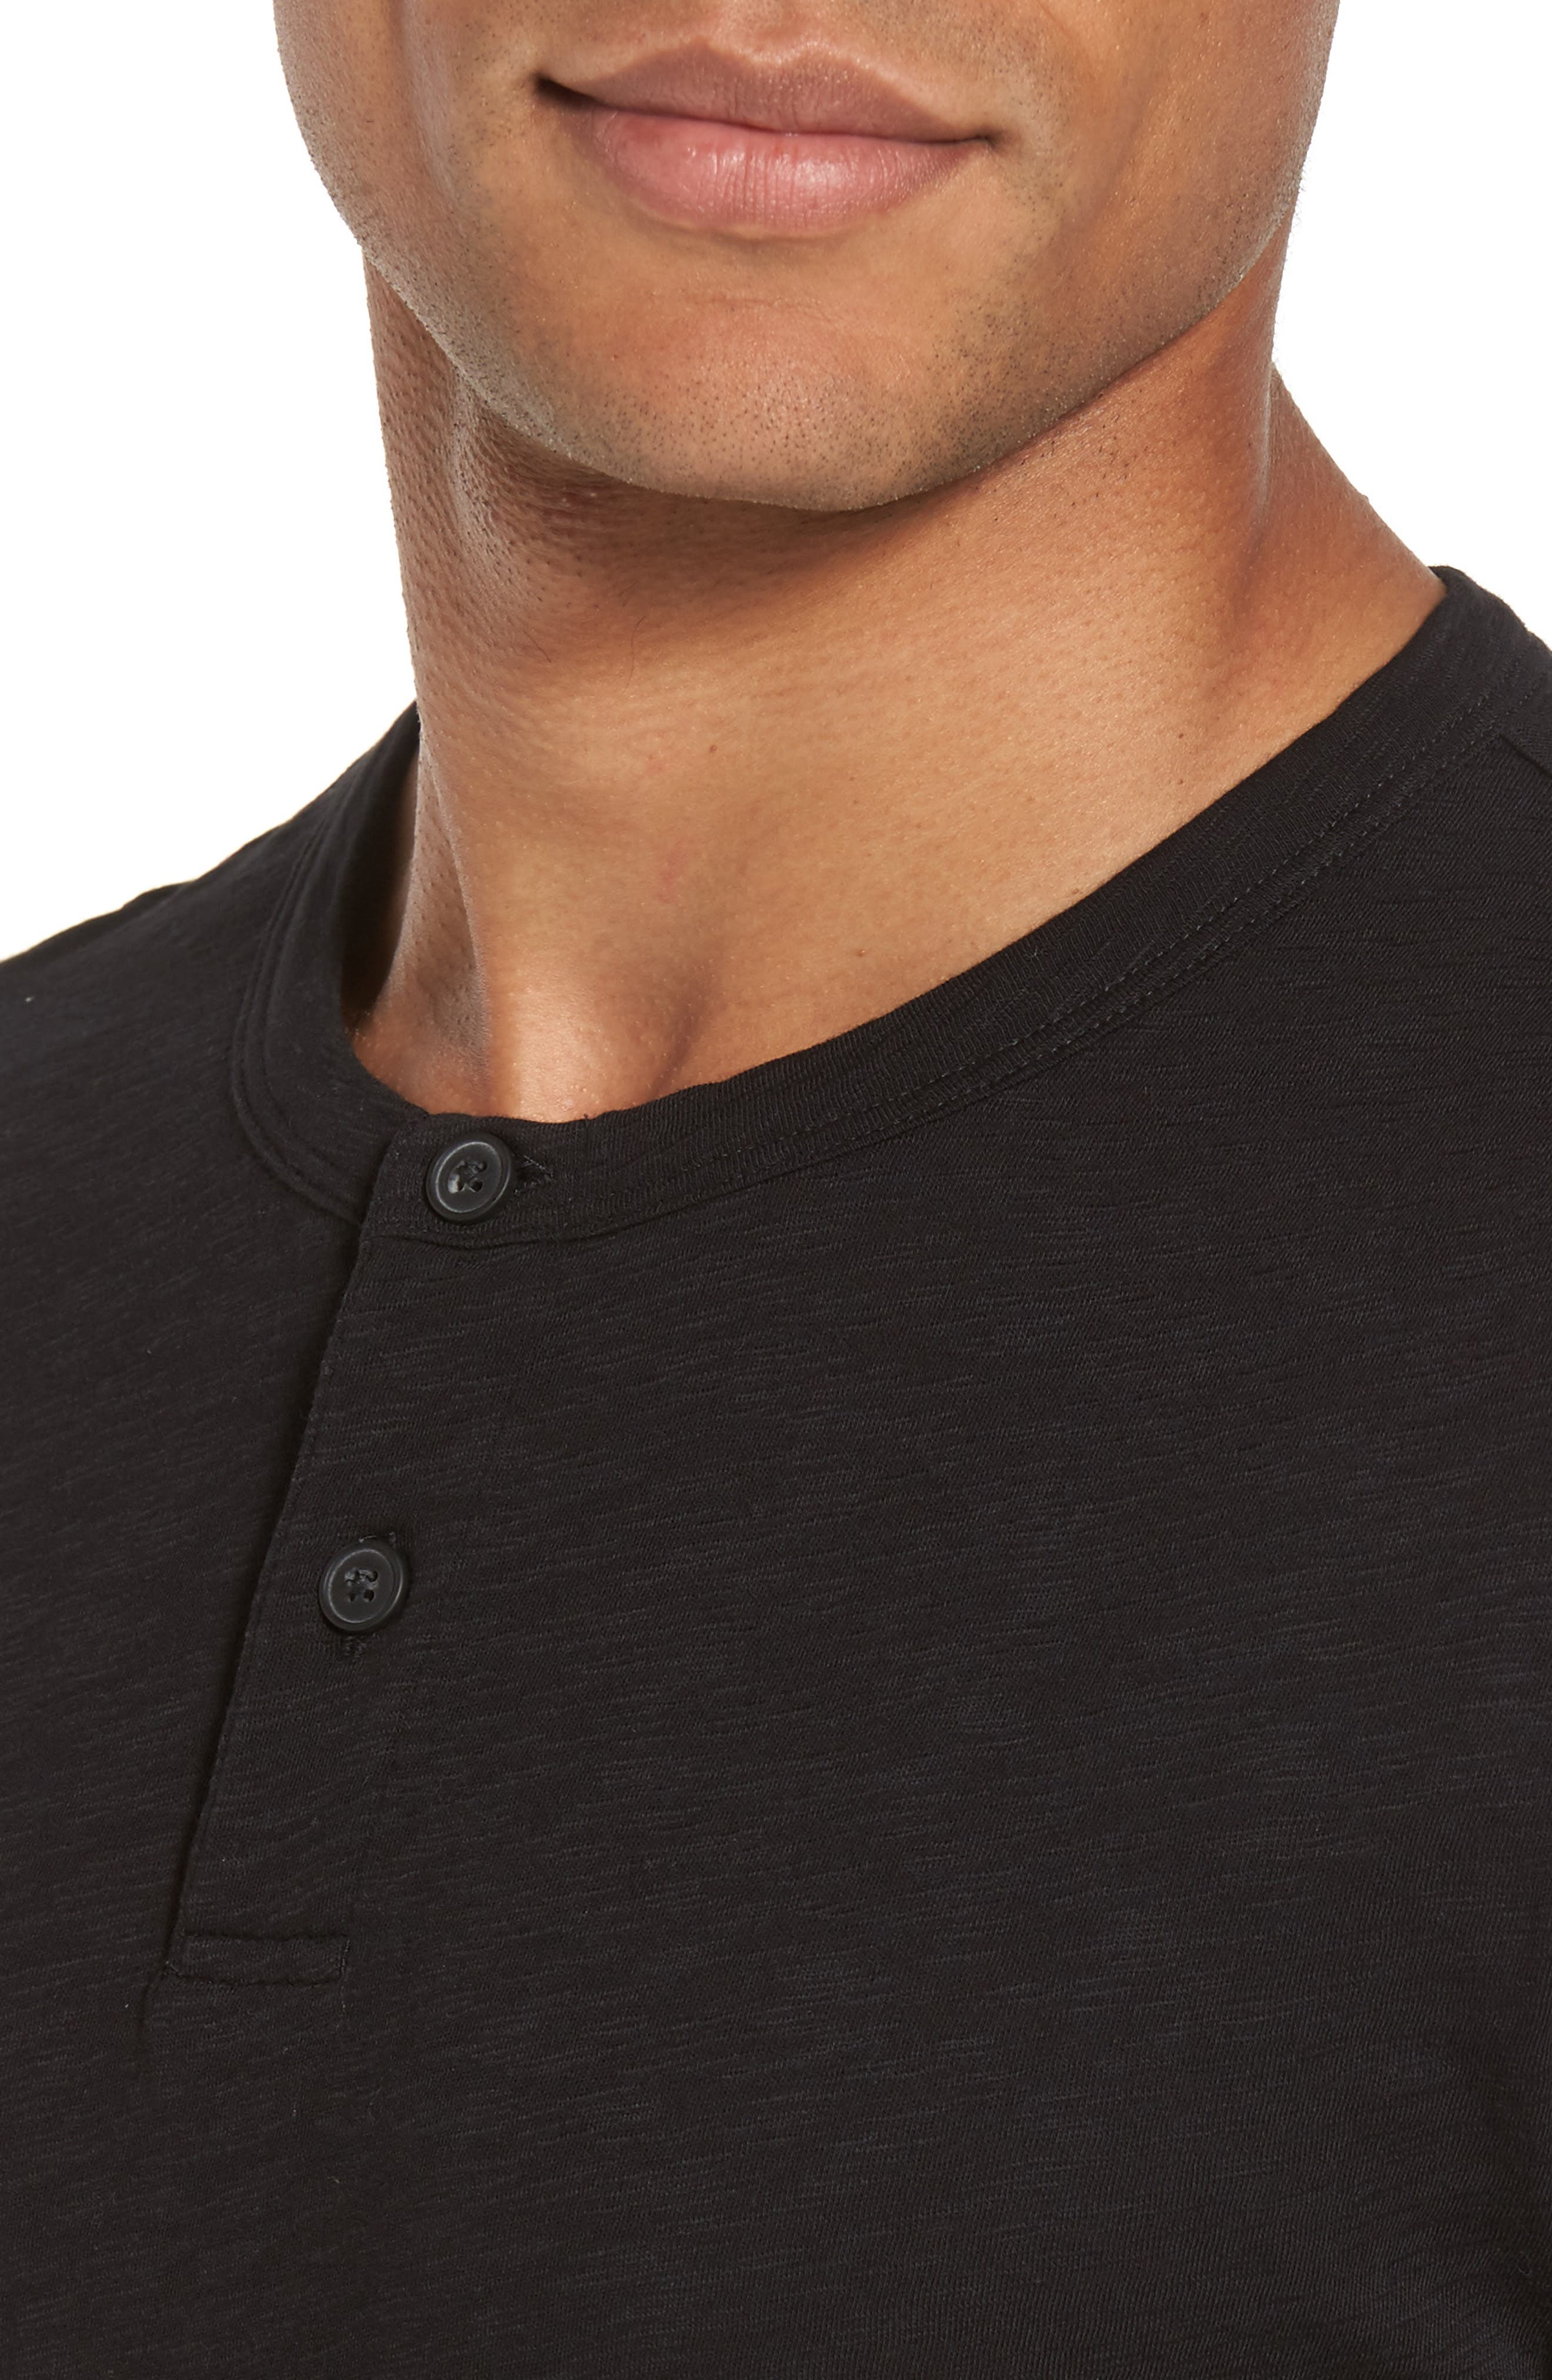 Gaskell Henley T-Shirt,                             Alternate thumbnail 24, color,